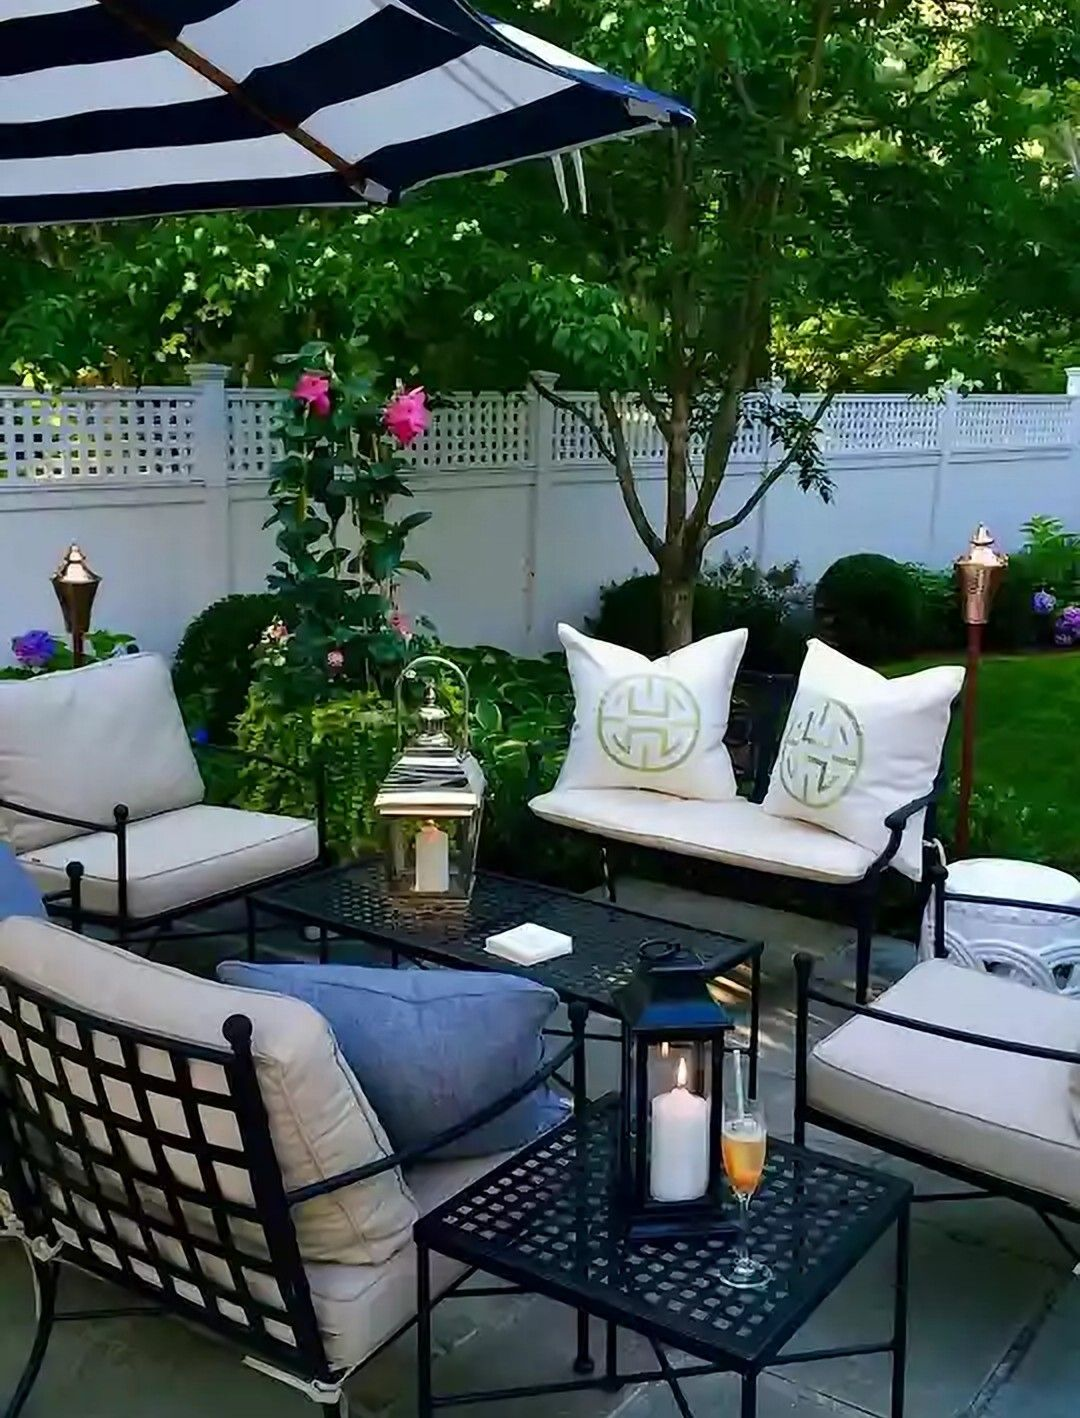 Classic Black White Steel Patio Furniture This Look Available At Amalfi Living Made In The Usa Outdoor Patio Decor Outdoor Patio Space Patio Decor